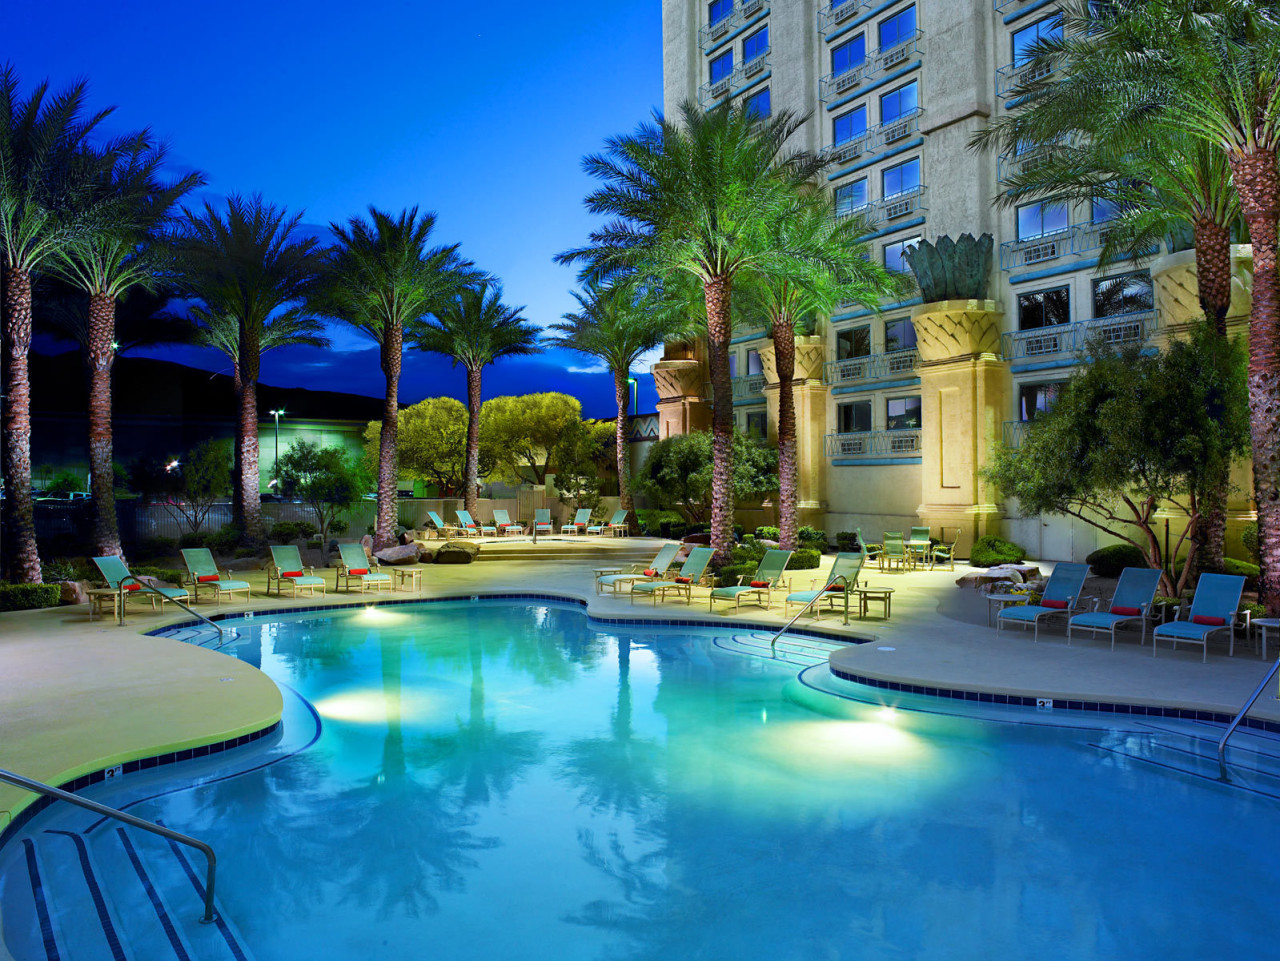 Top 20 las vegas resort pools part 1 for Top 20 hotels